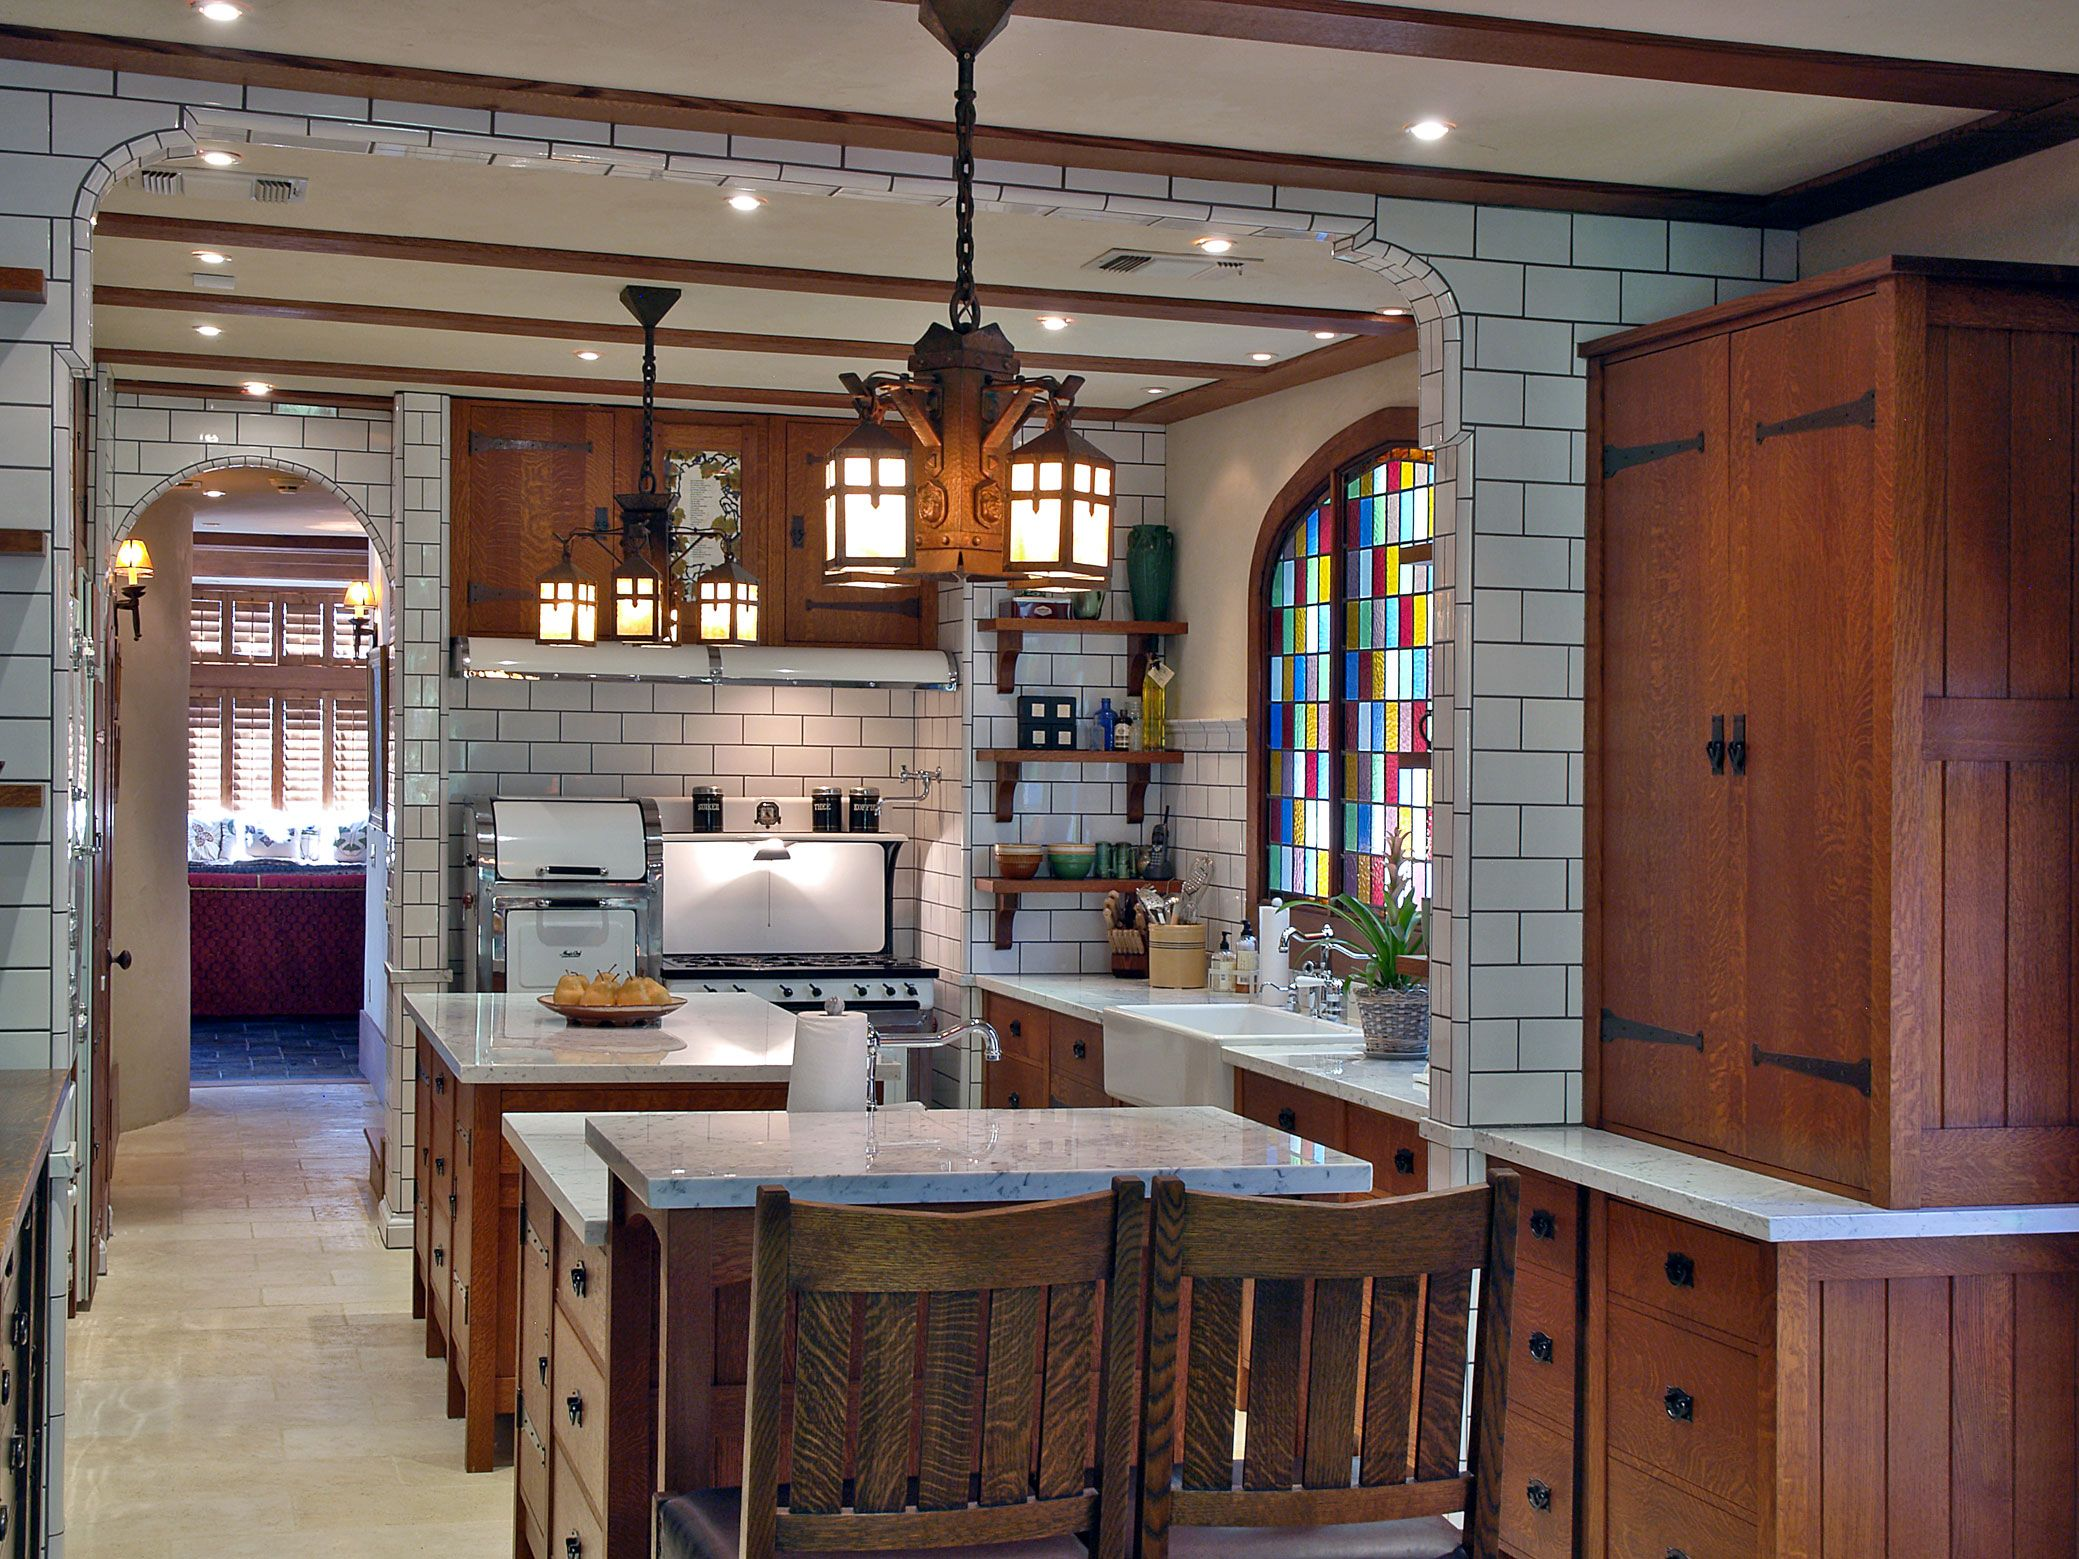 Interesting Play Of Materials. Tile And Wood Work Well Together. Alluring  Small White Kitchen